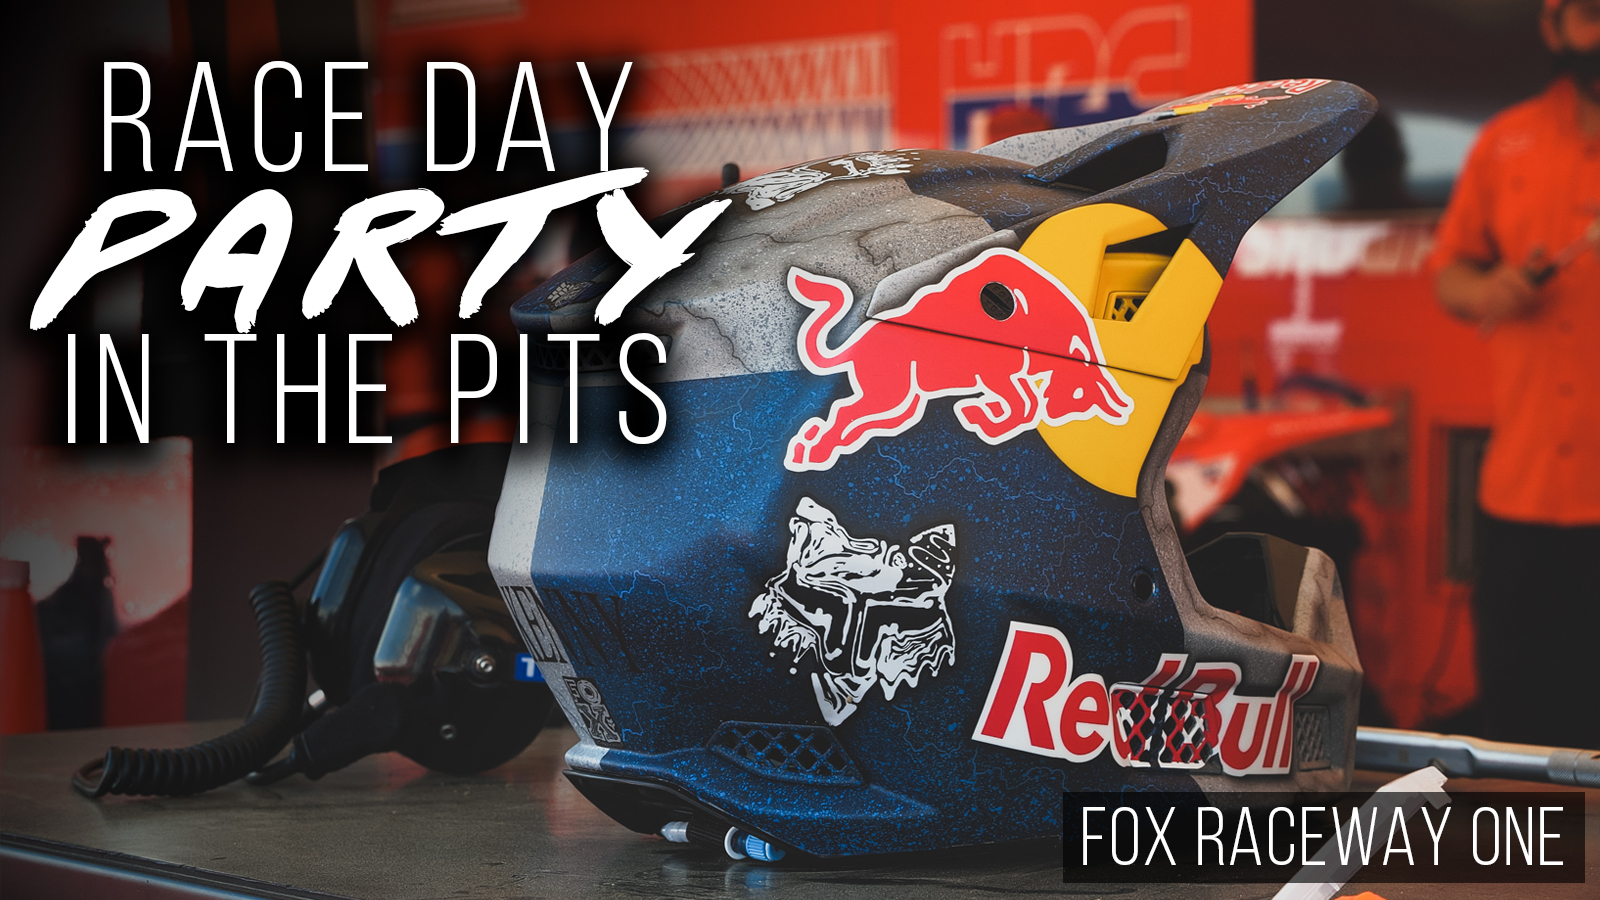 Race Day Party In the Pits   Fox Raceway One